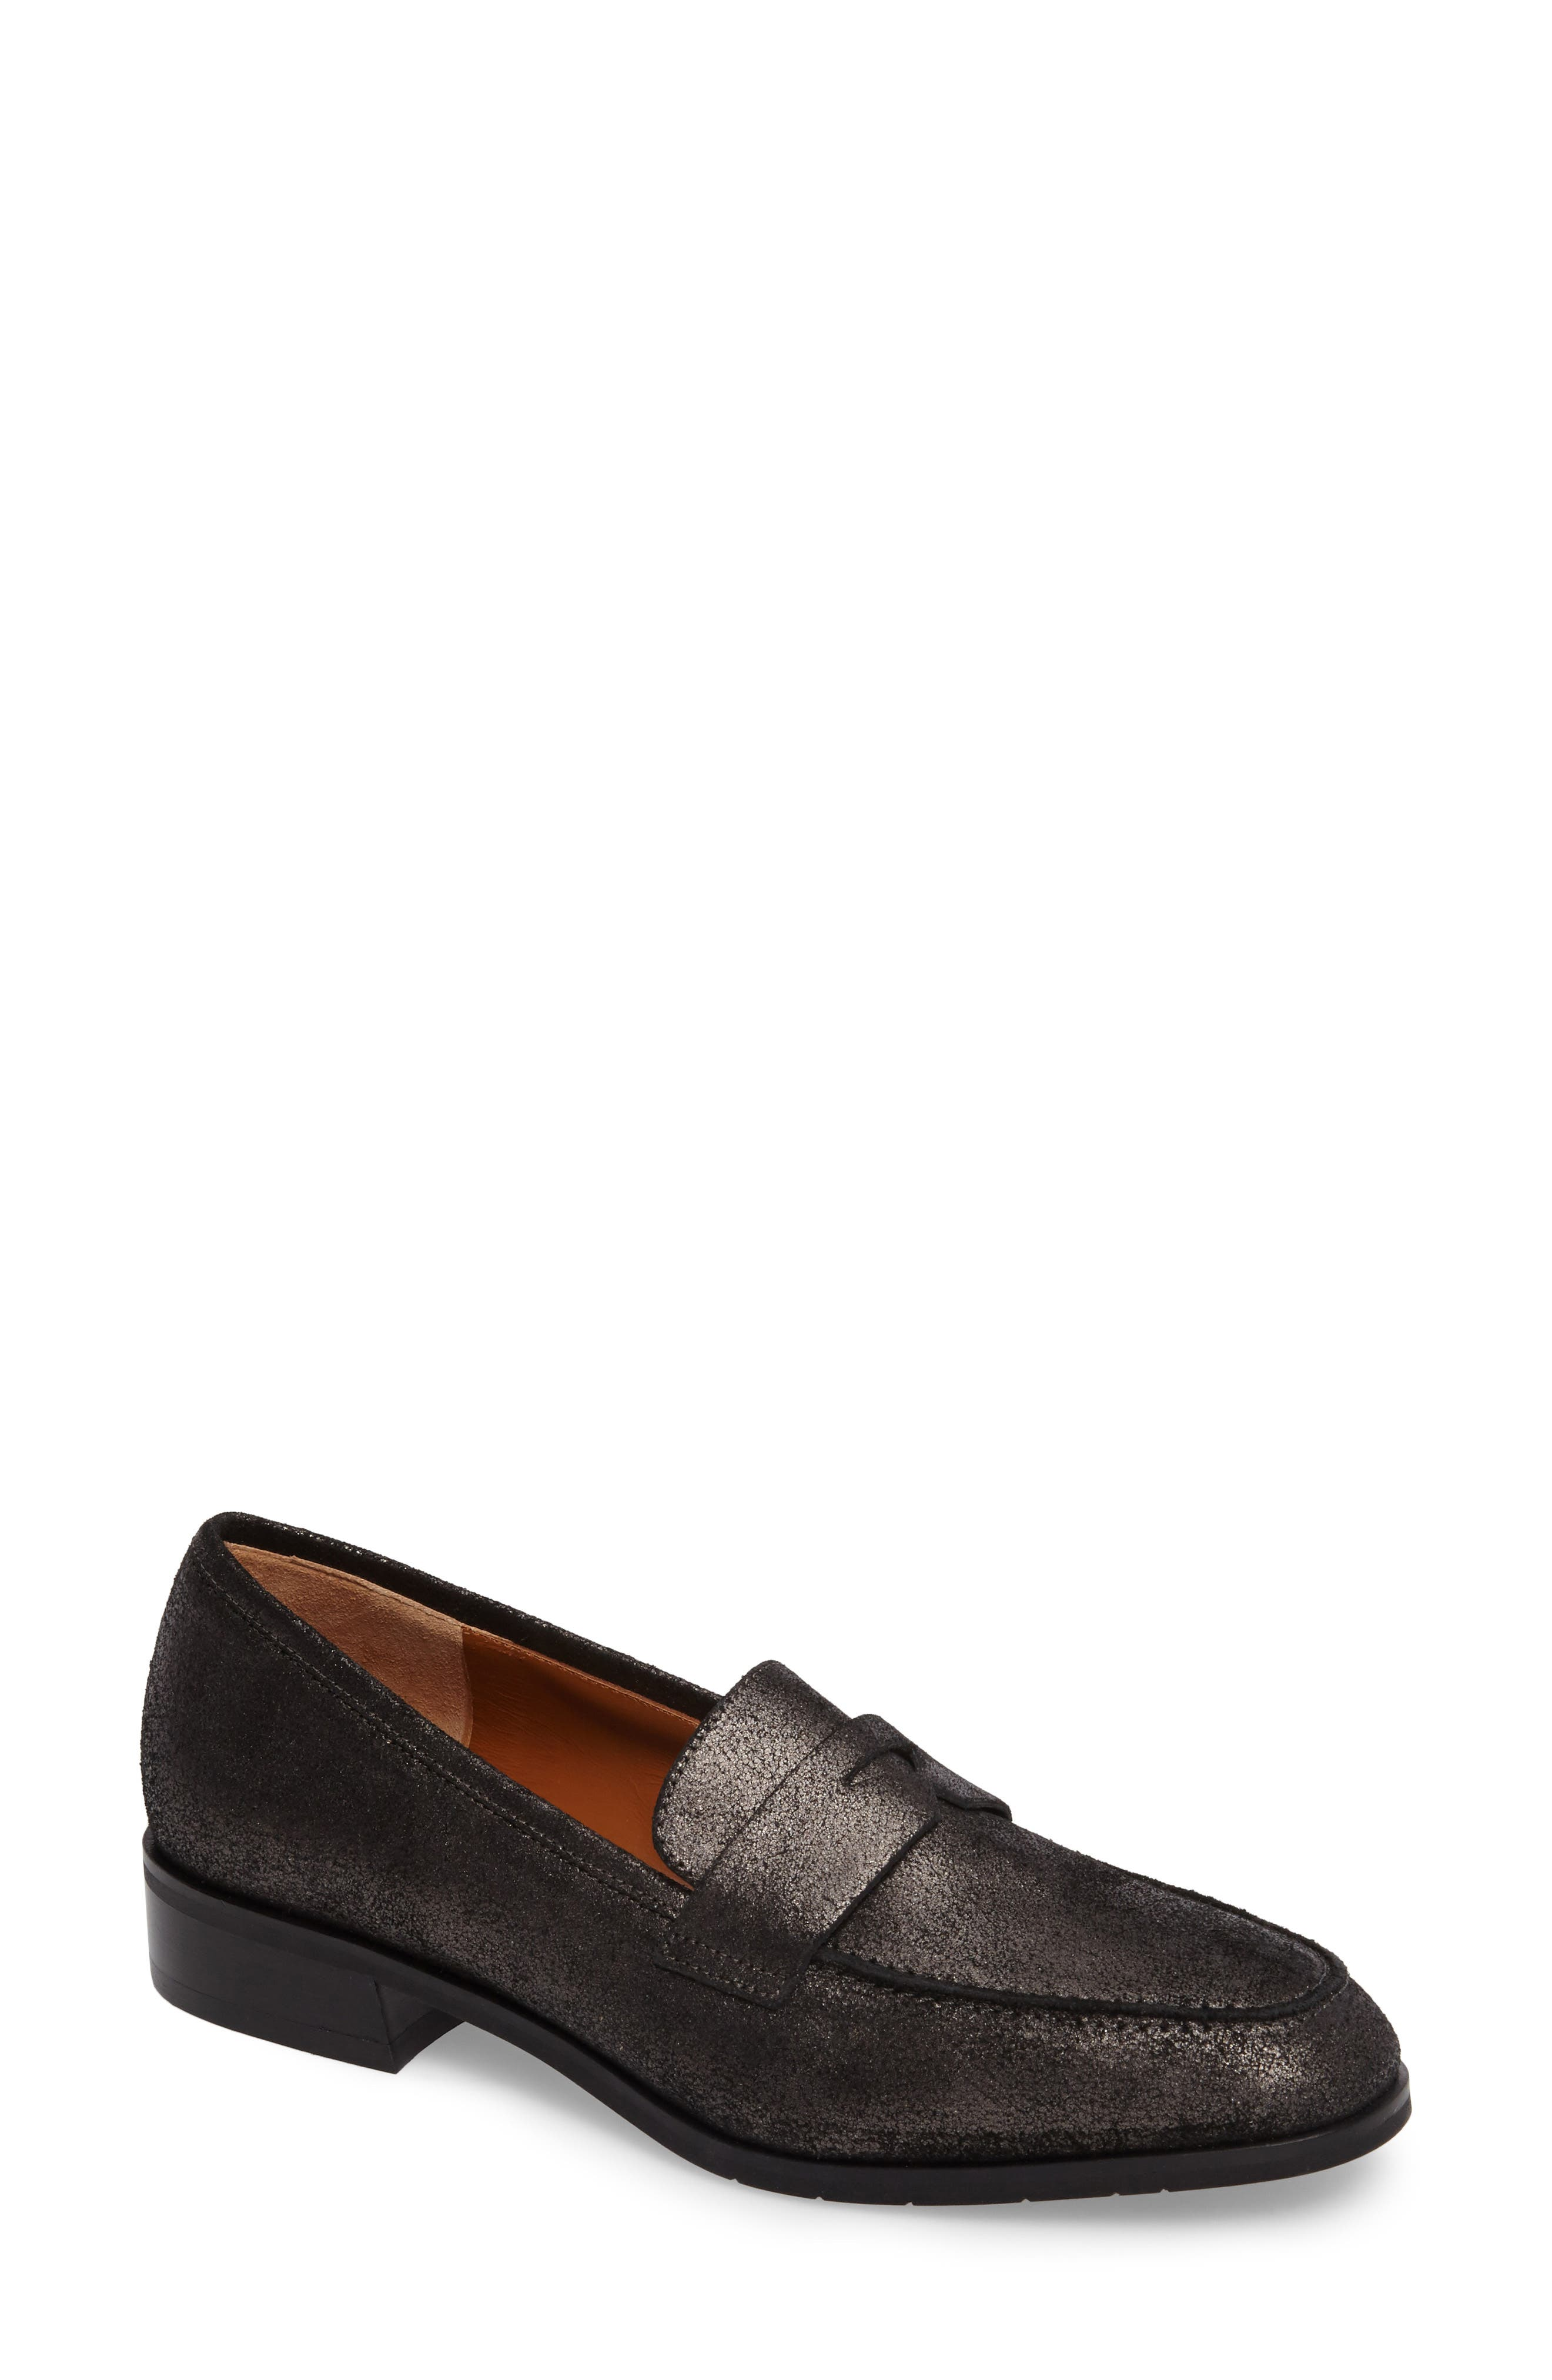 Aquatalia Sharon Weatherproof Penny Loafer (Women)